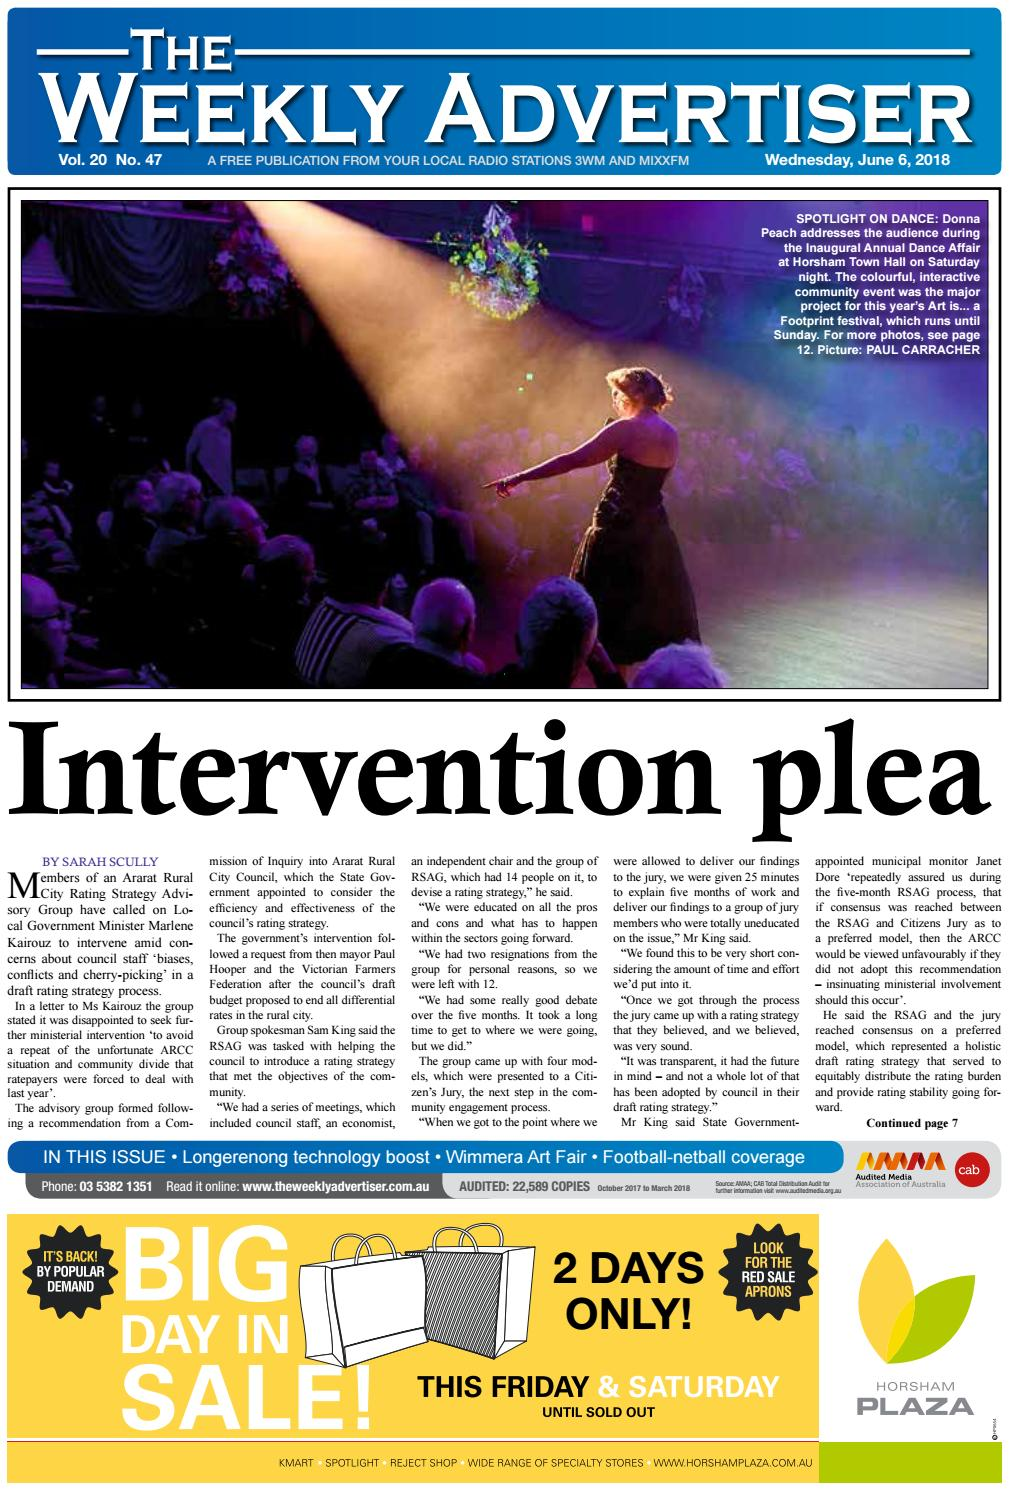 The Weekly Advertiser - Wednesday, June 6, 2018 by The